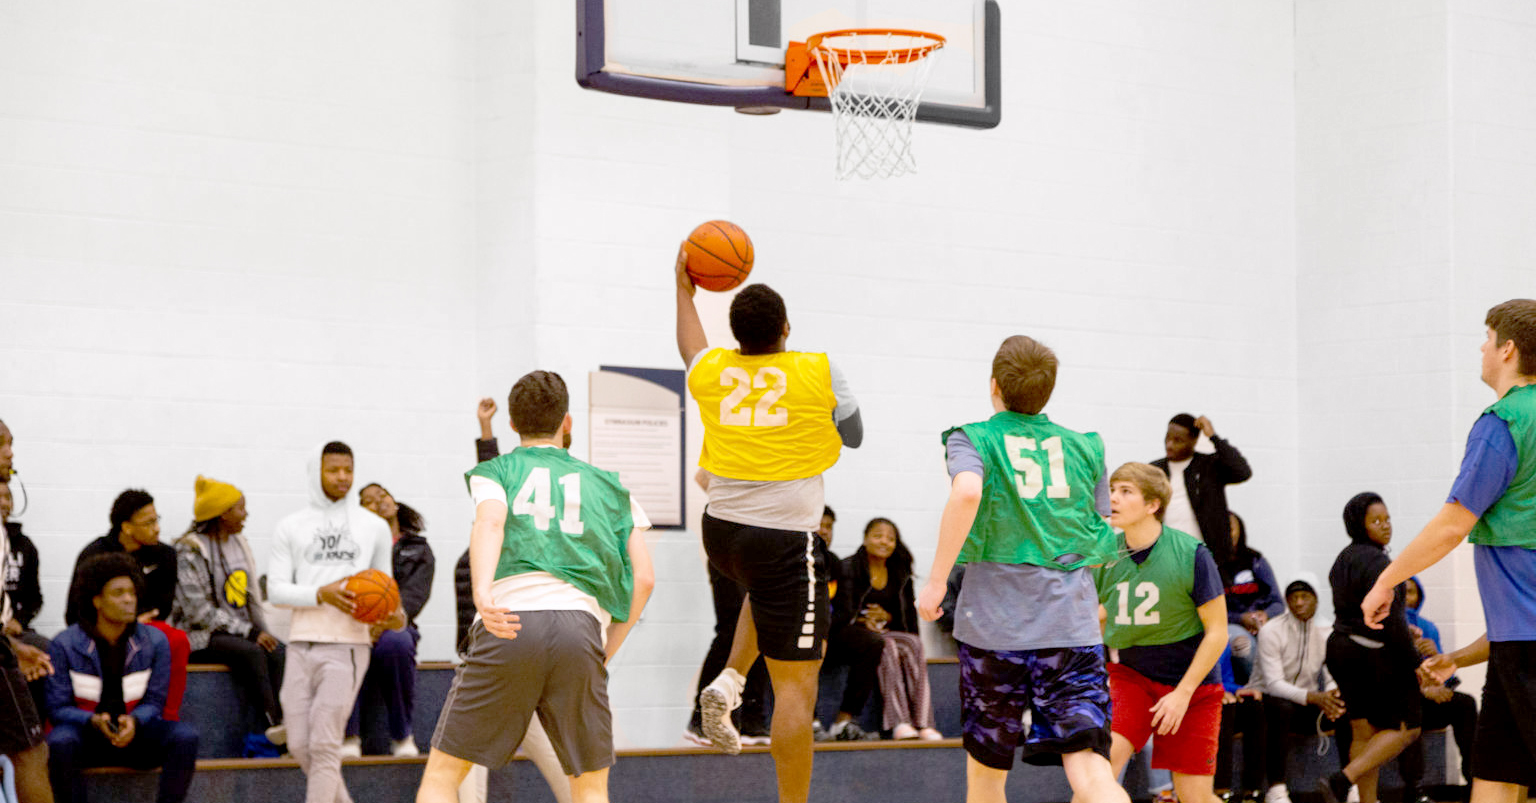 Students playing a basketball game at the Morris Recreation Center.